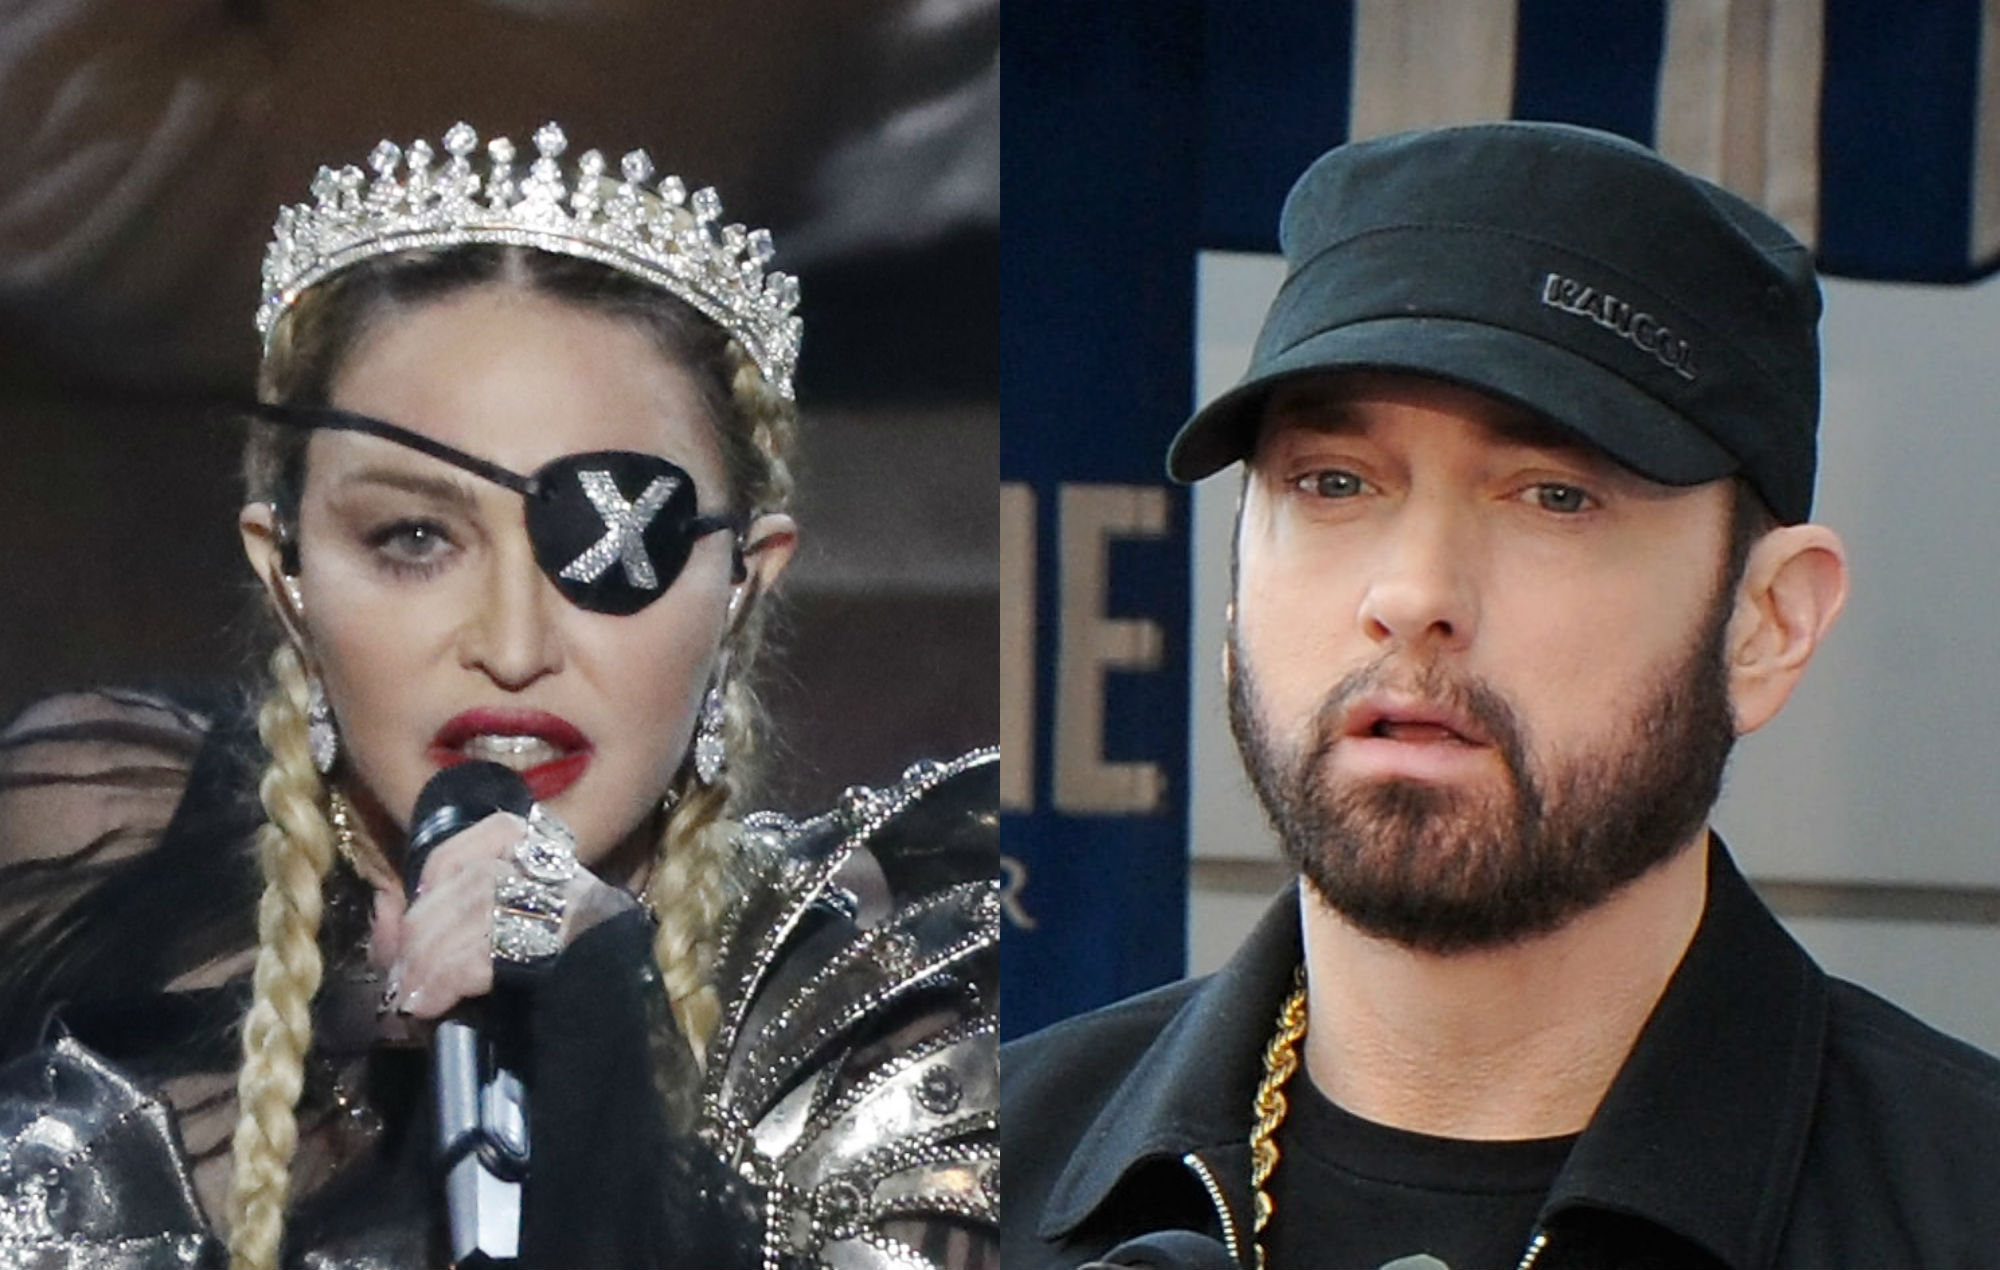 Madonna praises Eminem on gun control with 'The Sound of Silence' cover